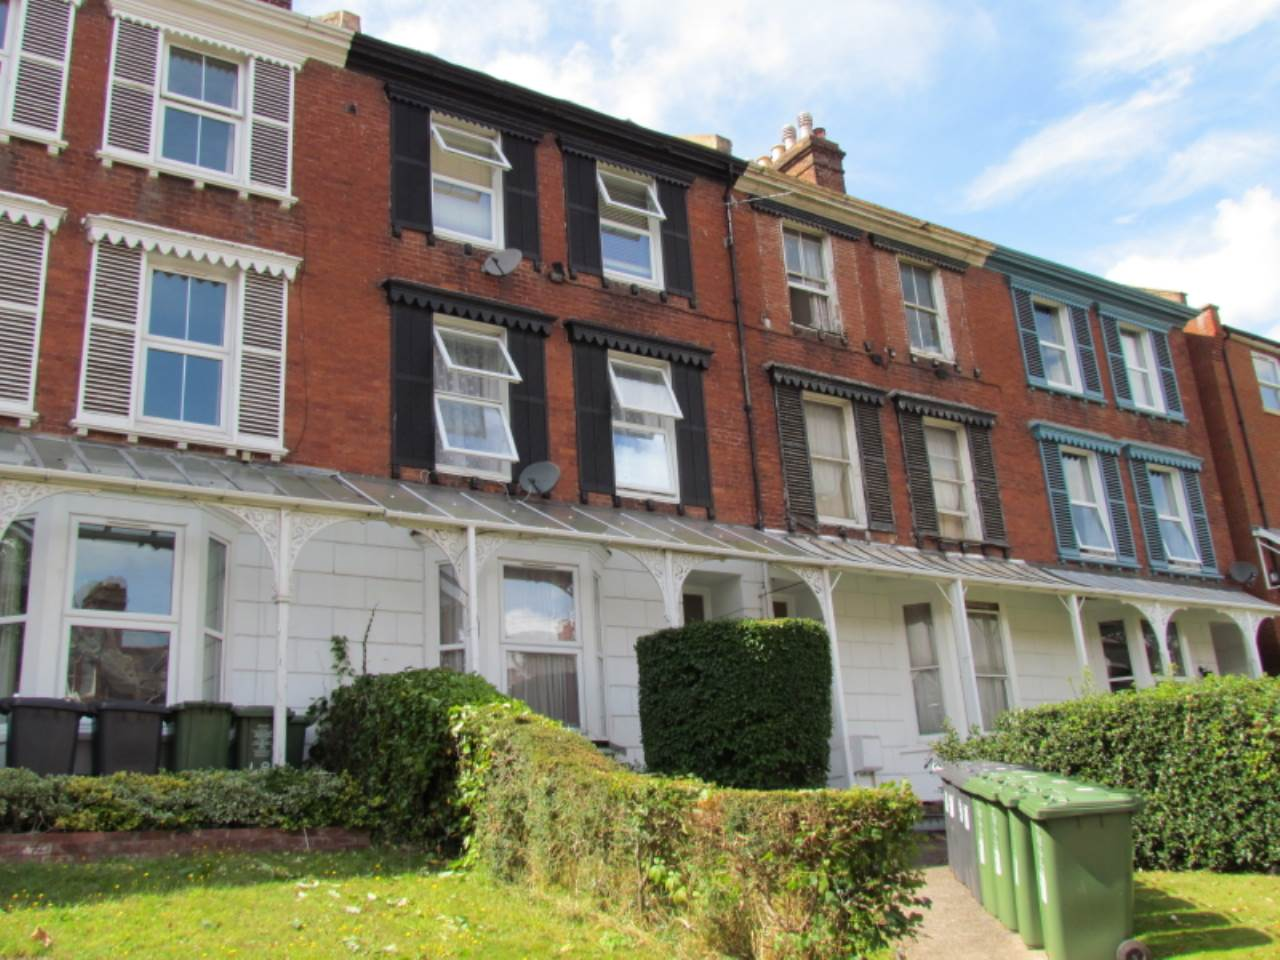 1 bed house / flat share to rent in Old Tiverton Road - Property Image 1